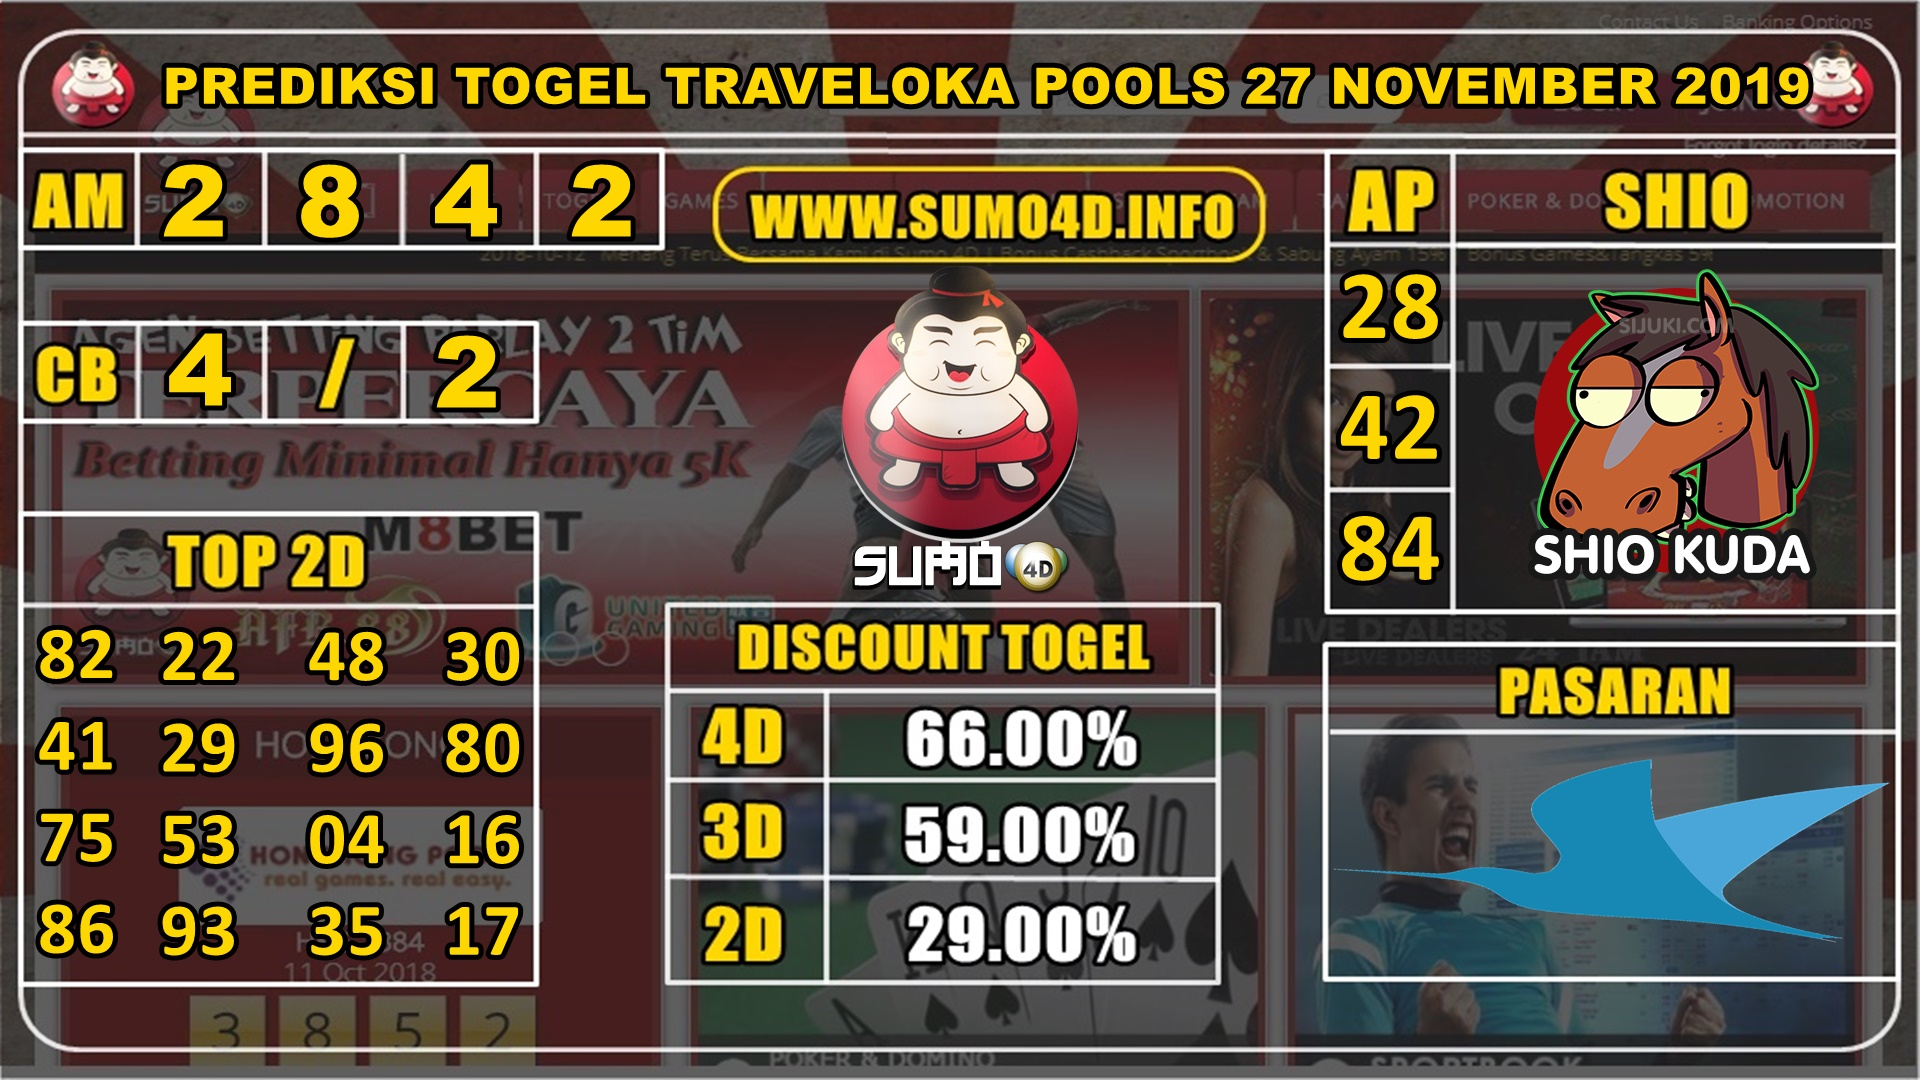 PREDIKSI TOGEL TRAVELOKA POOLS 27 NOVEMBER 2019